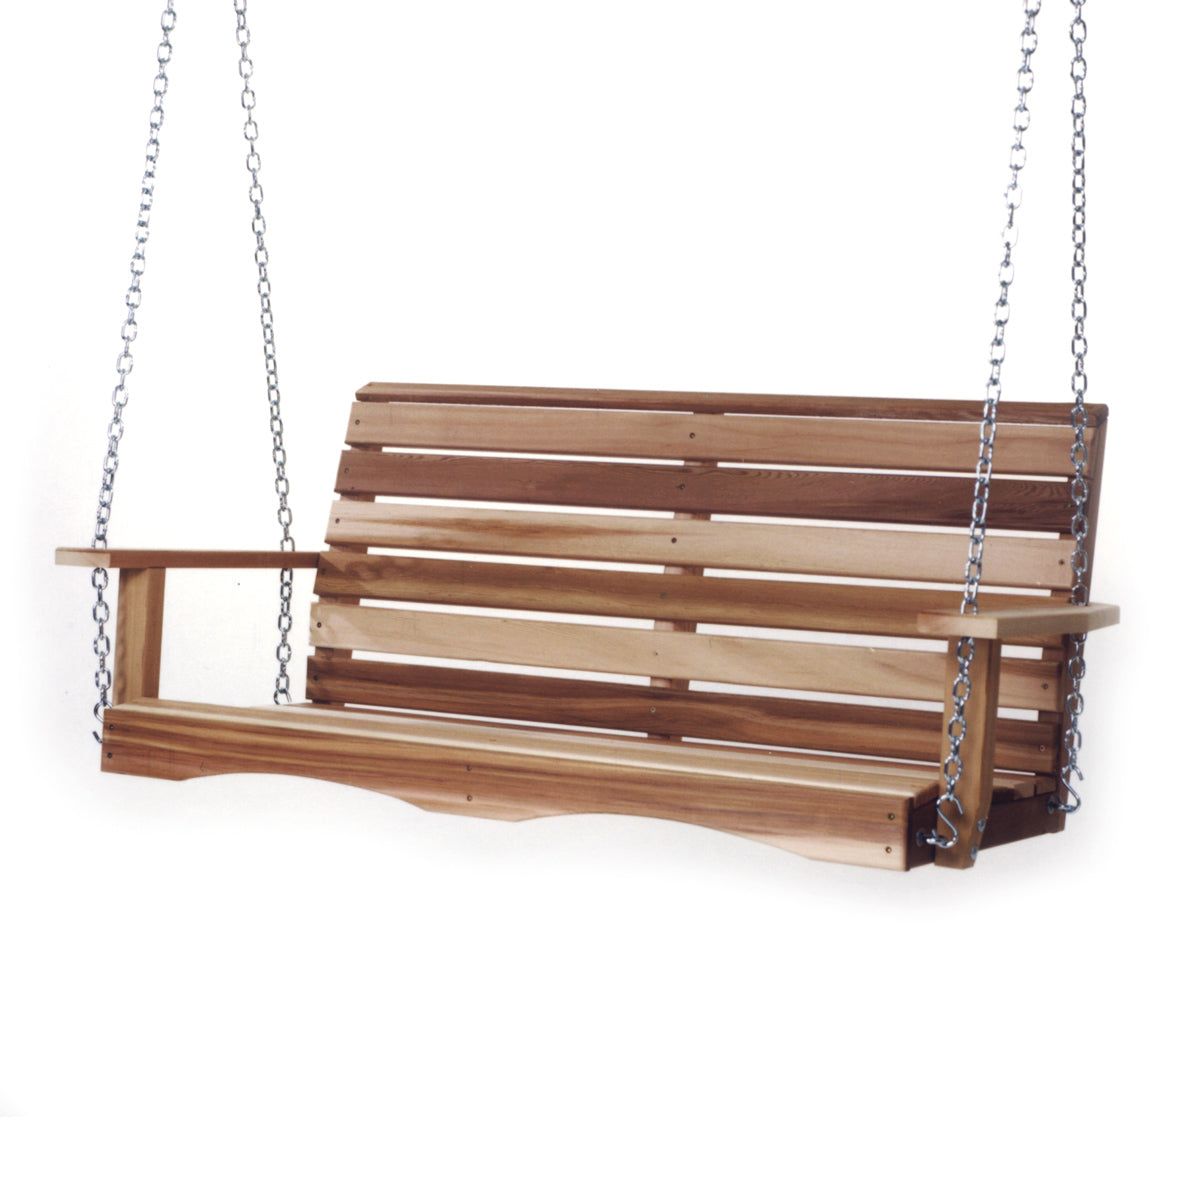 Porch Swing 4' With Comfort Springs - Swings and More